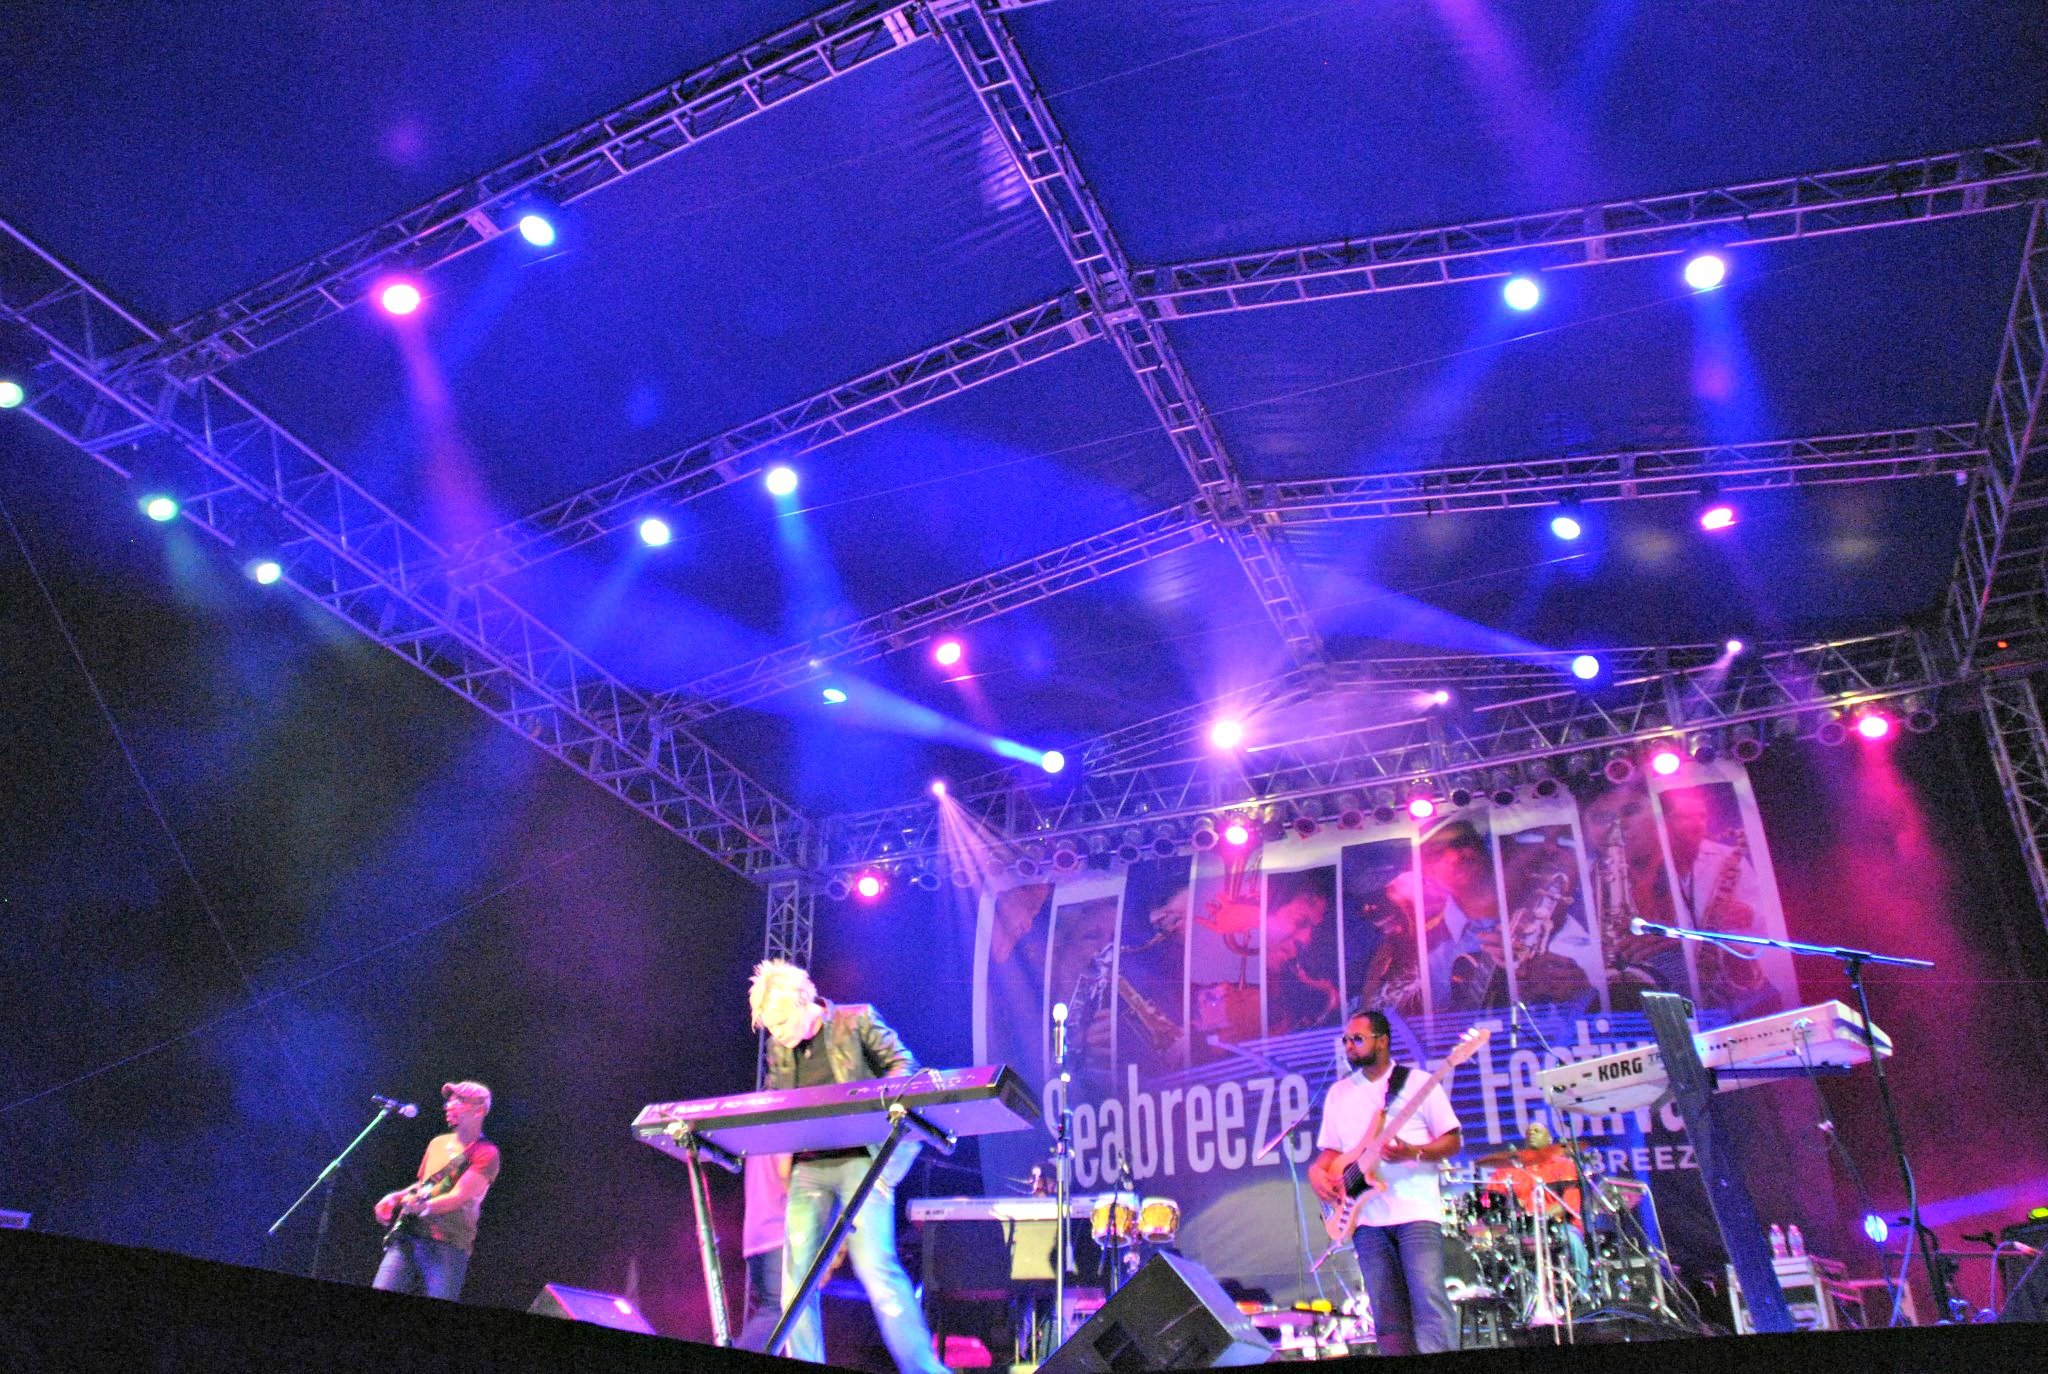 Brian Culbertson and his band performing at the Seabreeze Jazz Festival in Panama City Beach